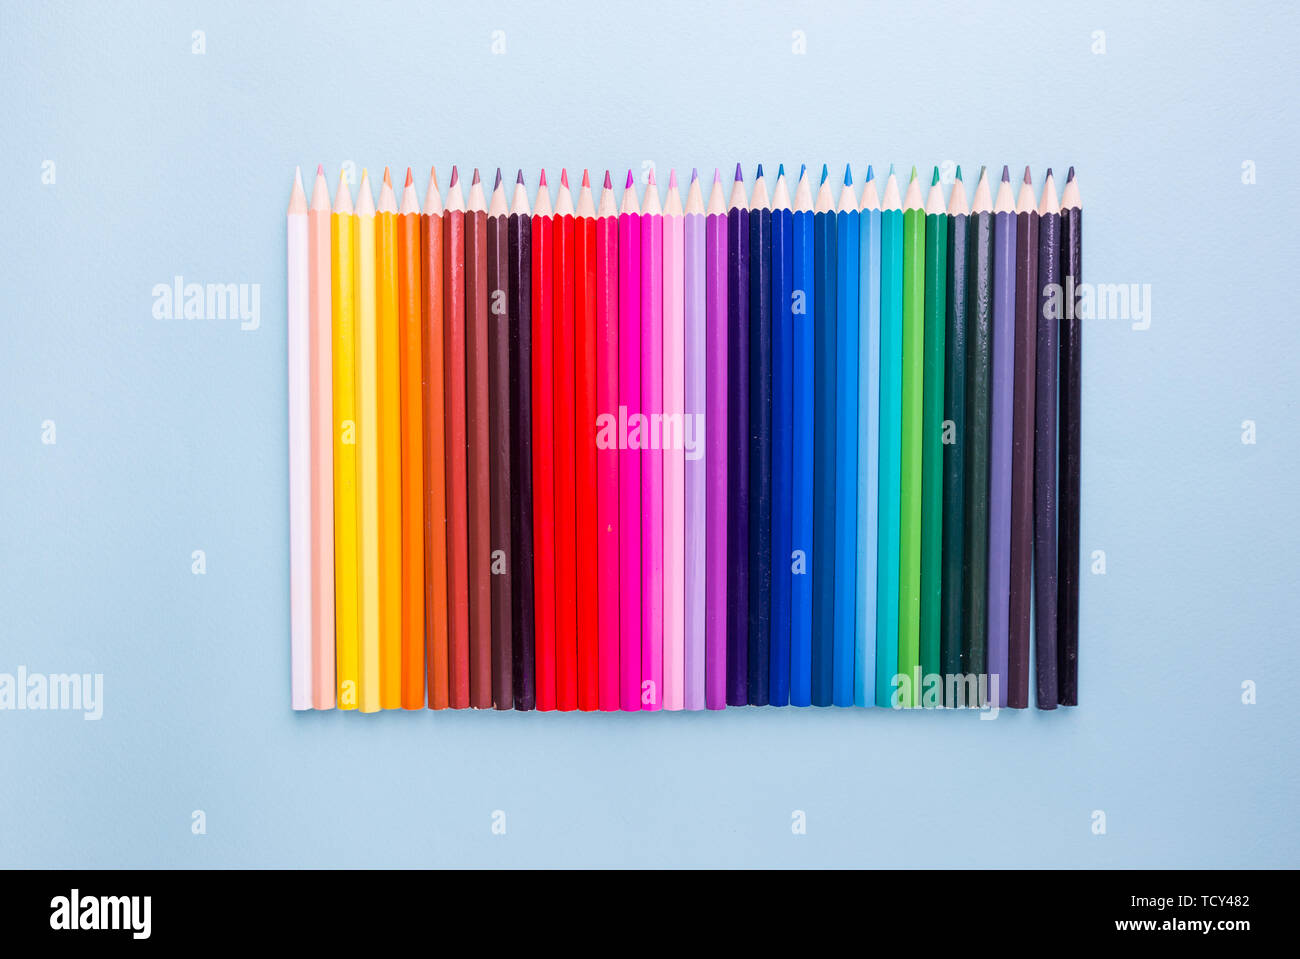 Pencils of various colors on a blue background, top view with copy space, flat lay - Stock Image